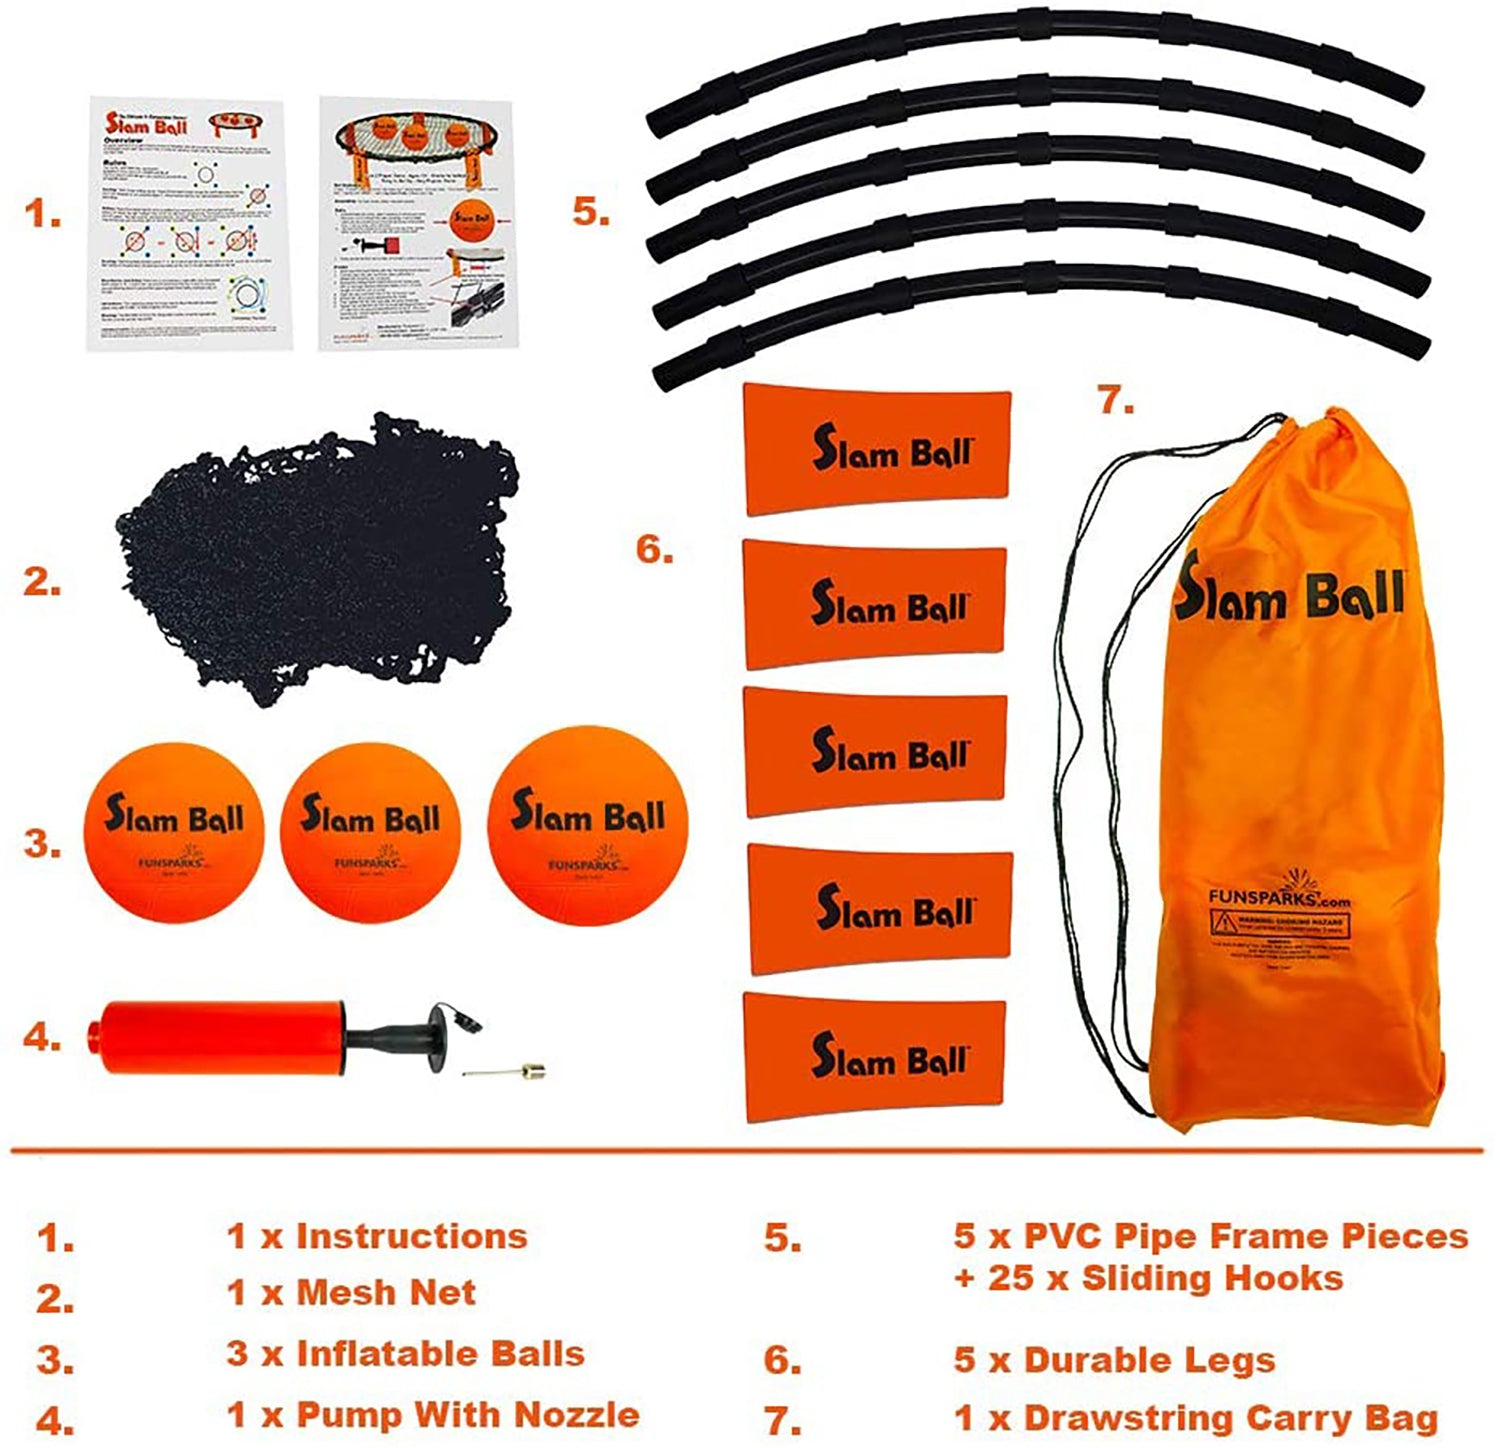 Components of Slam Ball by Funsparks